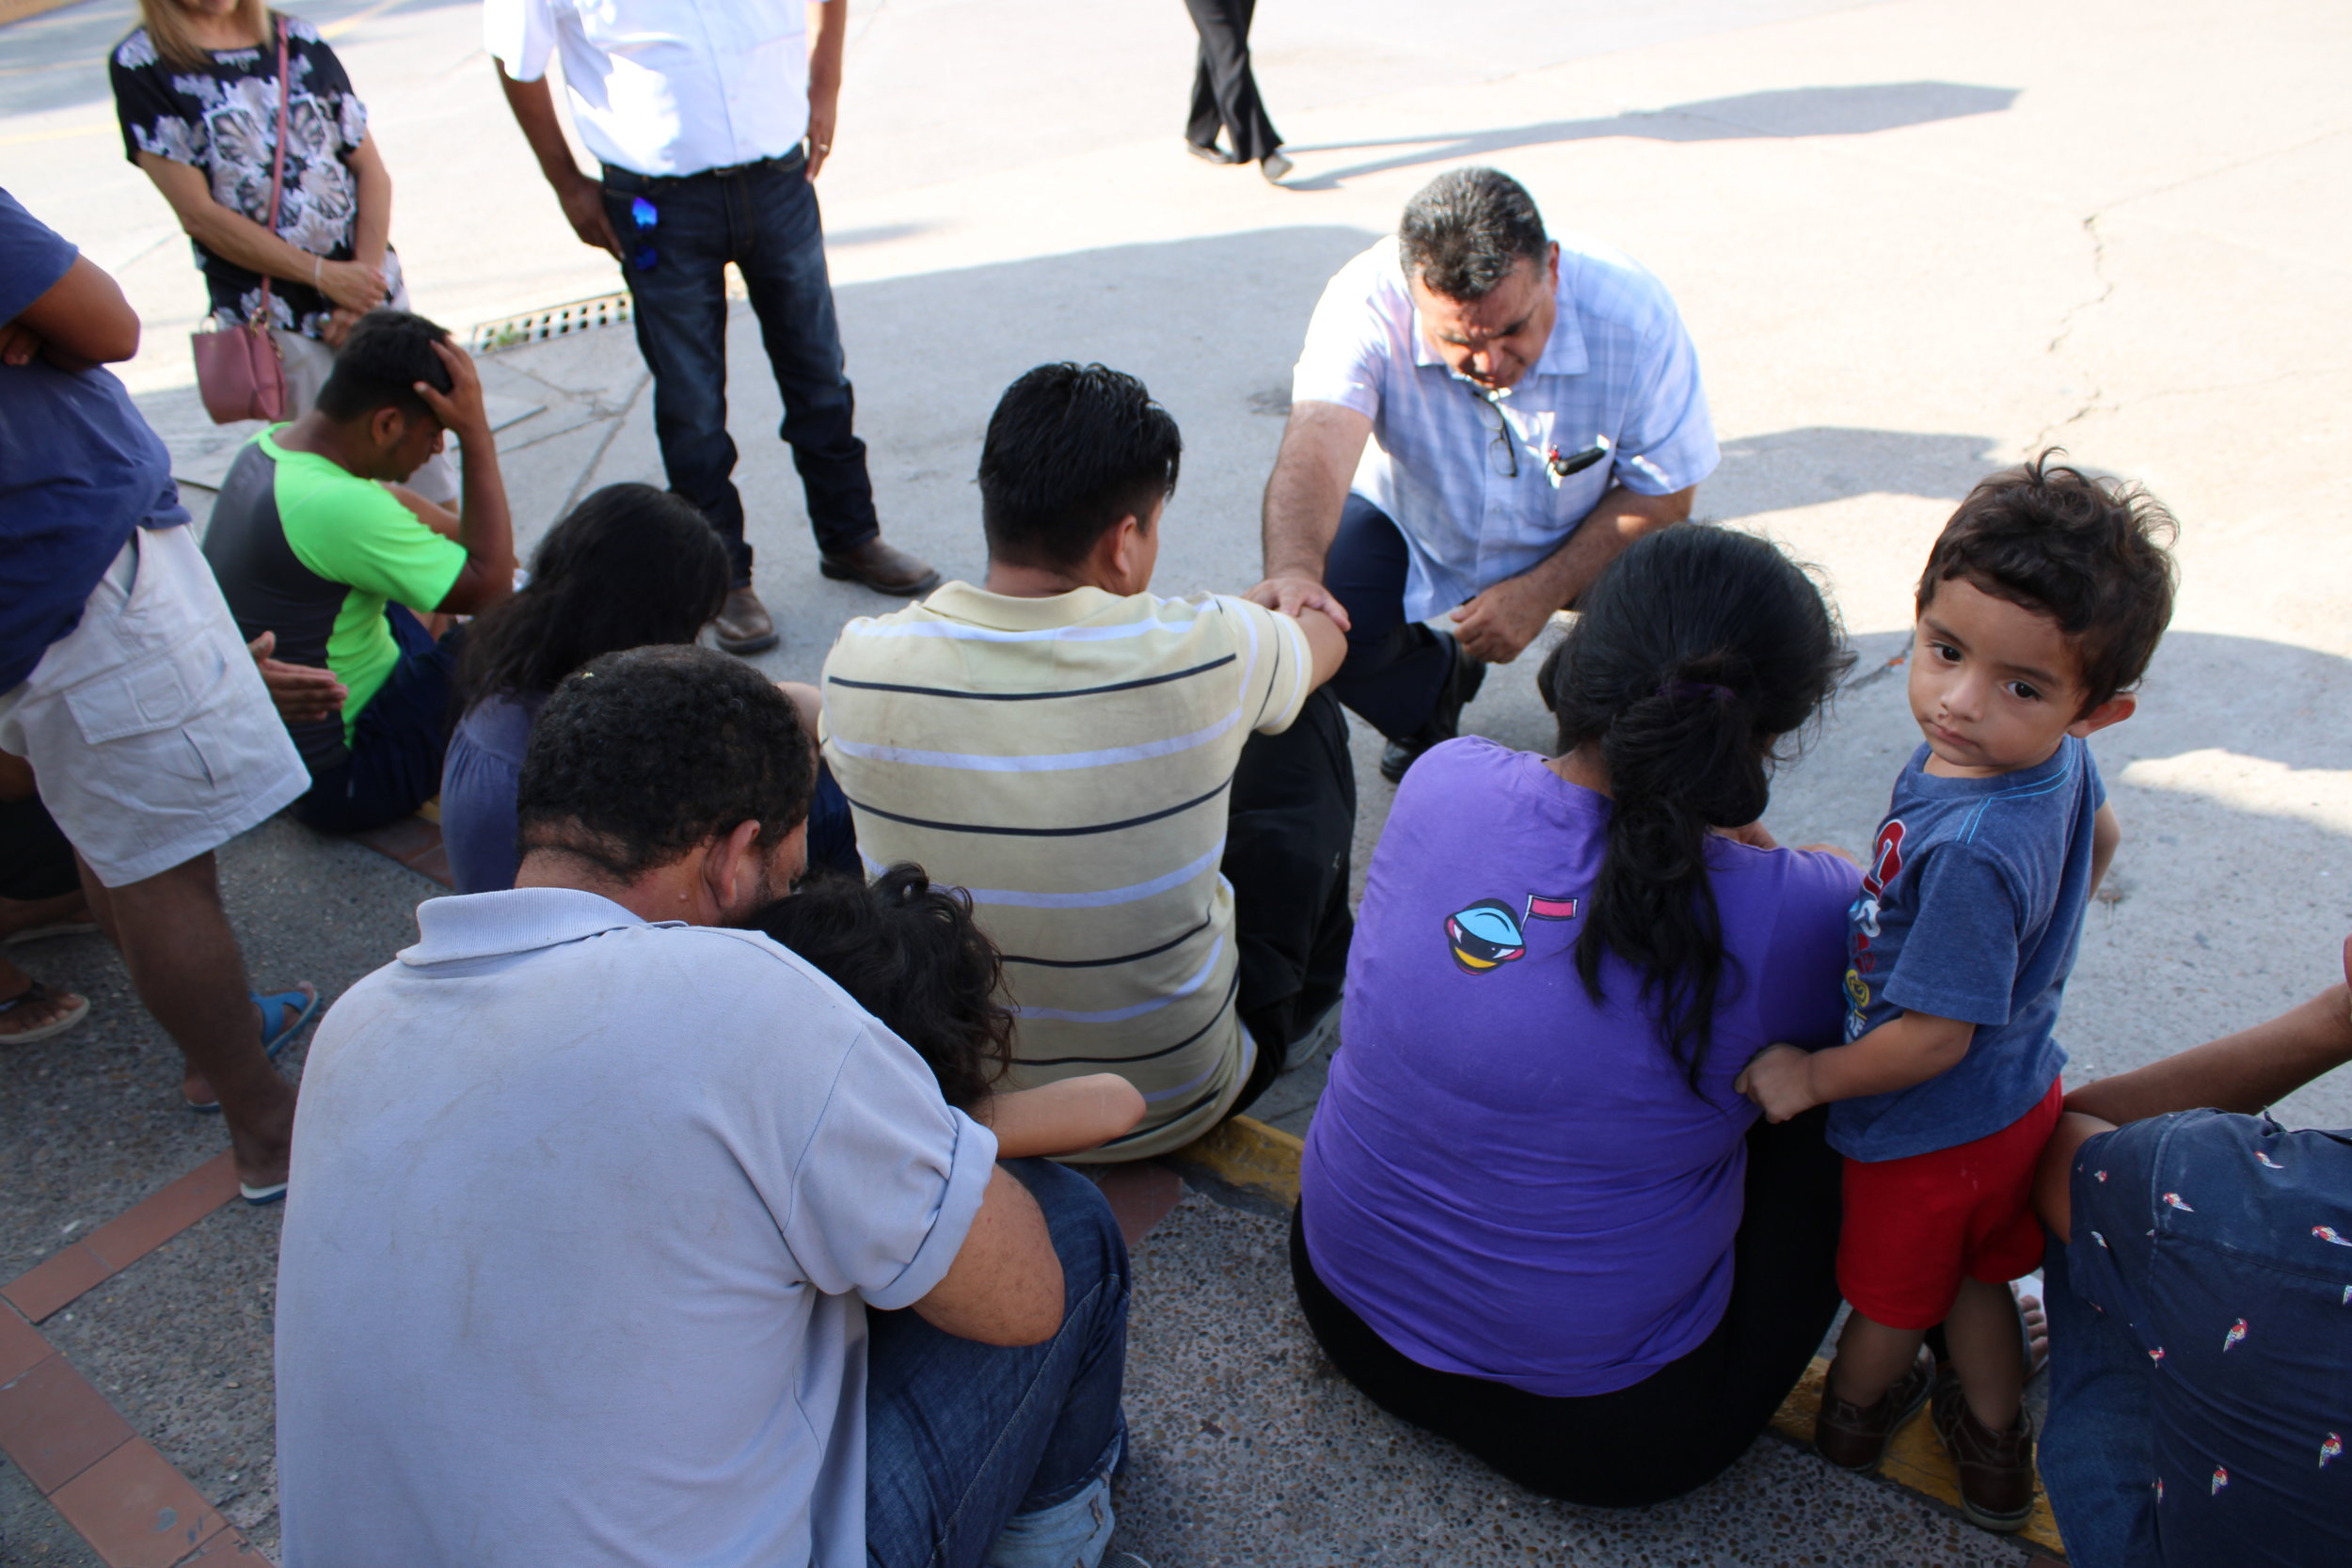 Rogelio Perez, leading prayer in top center